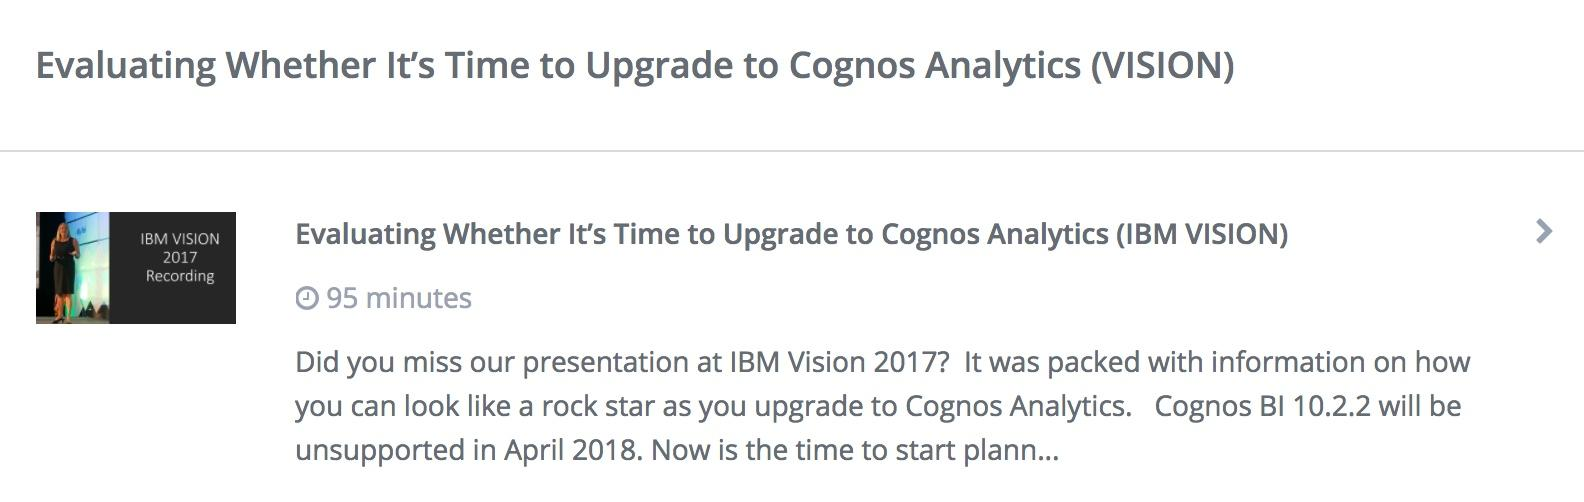 Upgrading to Cognos Analytics